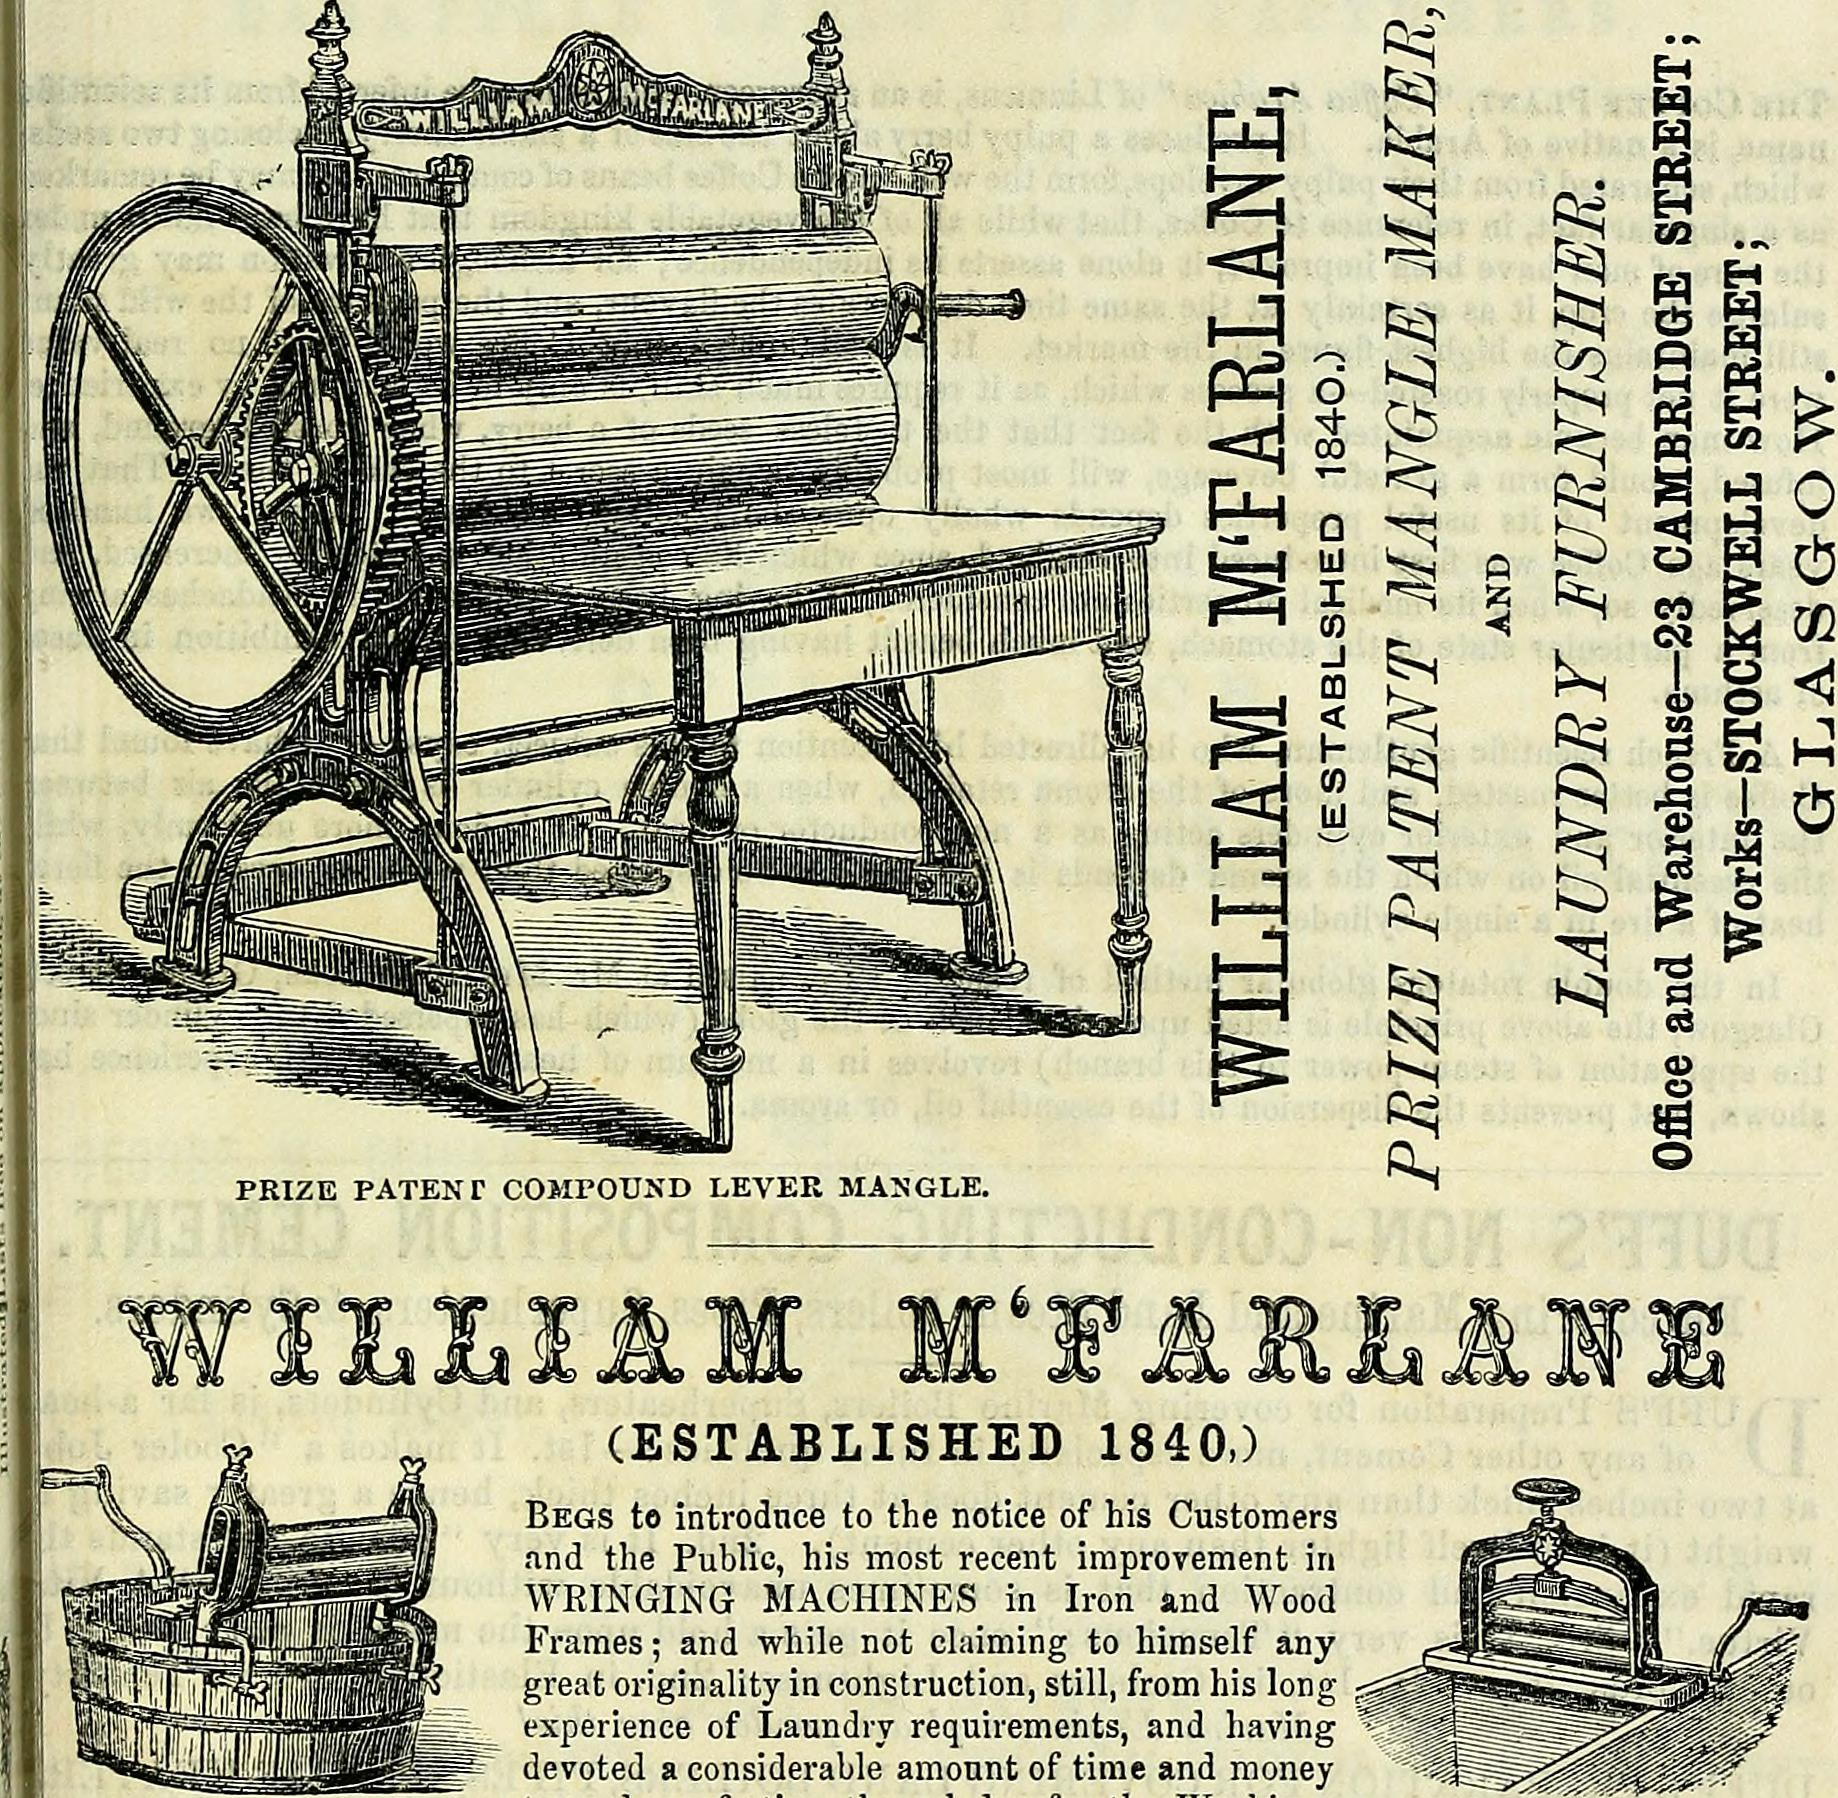 introduce to the notice of his Customers and the Public, his most recent improvement in WRINGING MACHINES in Iron and Wood Frames; and while not claiming